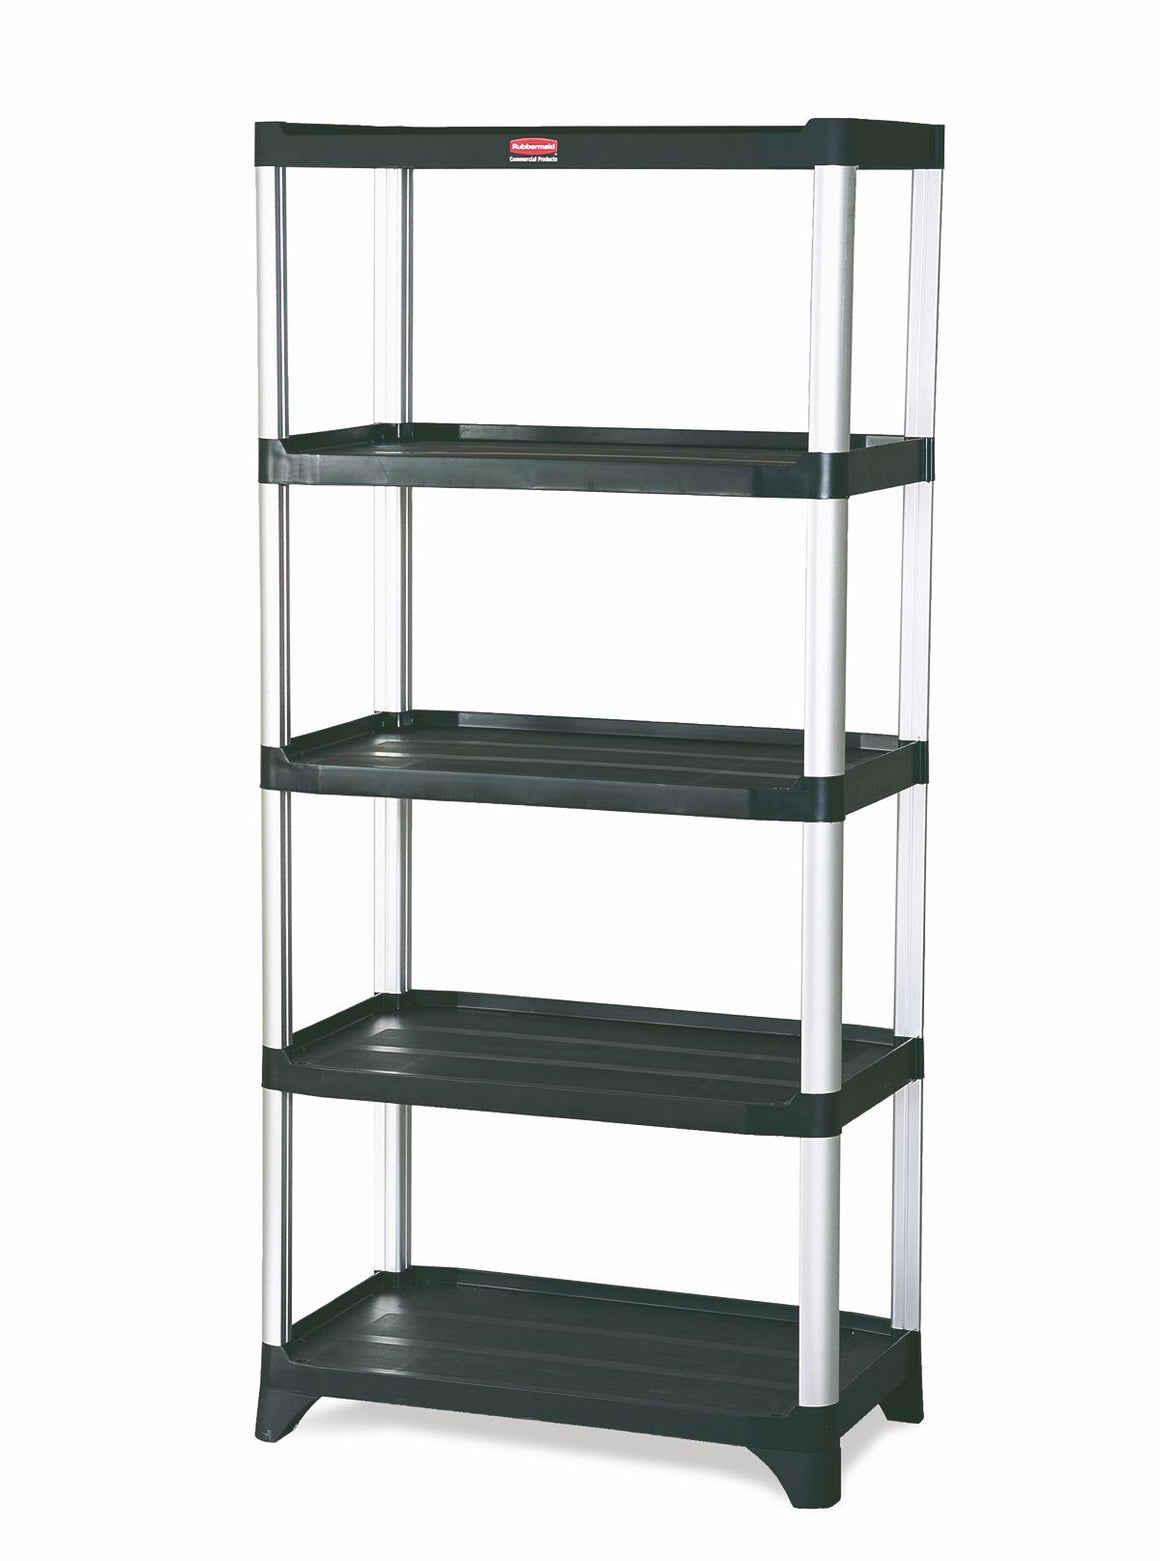 5-SHELF CART 35-1/8x20x71-3/8""